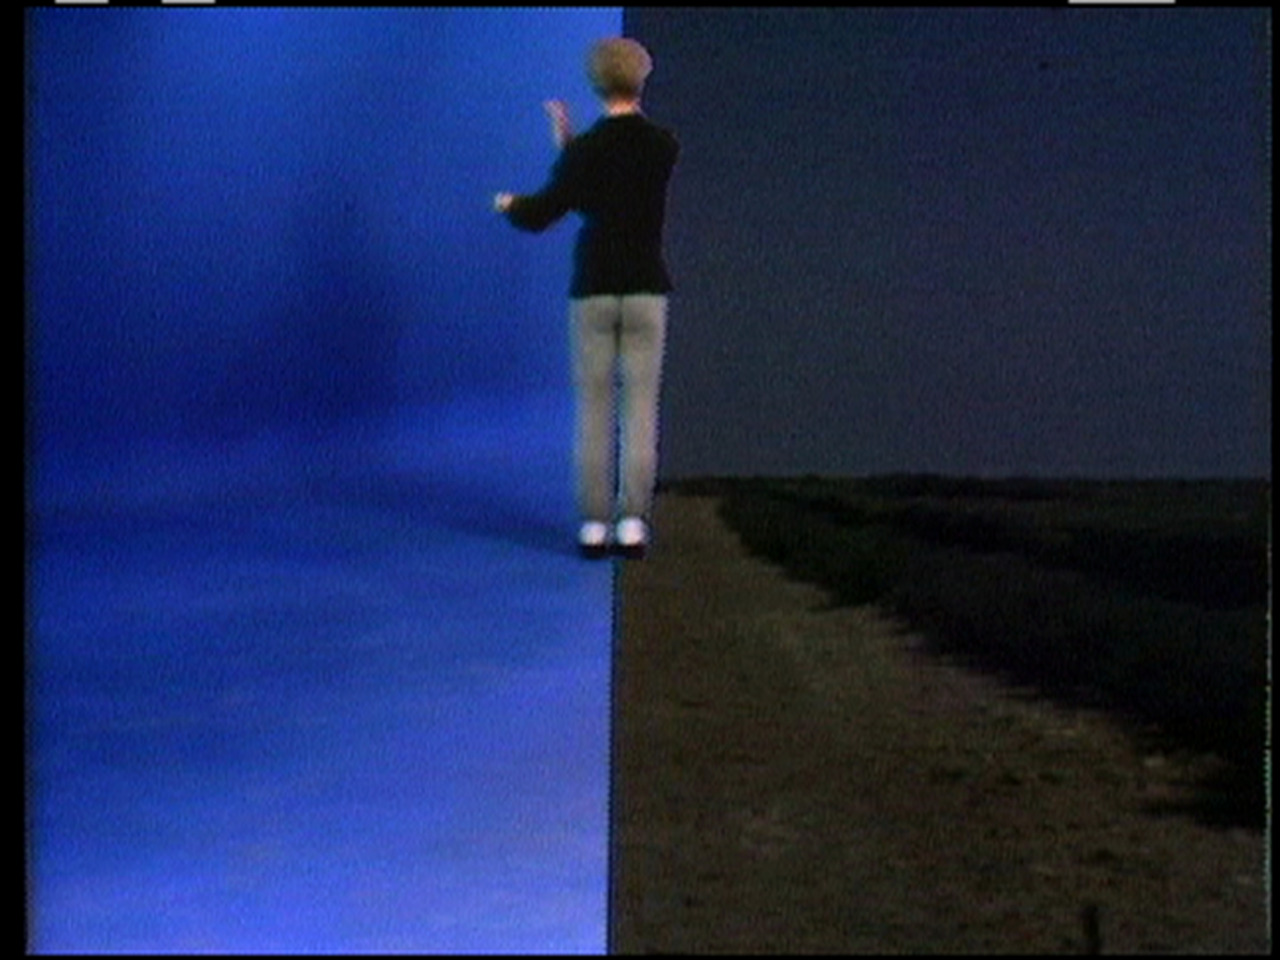 Charles Atlas and Merce Cunningham Blue Studio: Five Segments (video stills), 1975–76 Video, color, sound, 15:38 minutes Courtesy of Charles Atlas and Vilma Gold, London